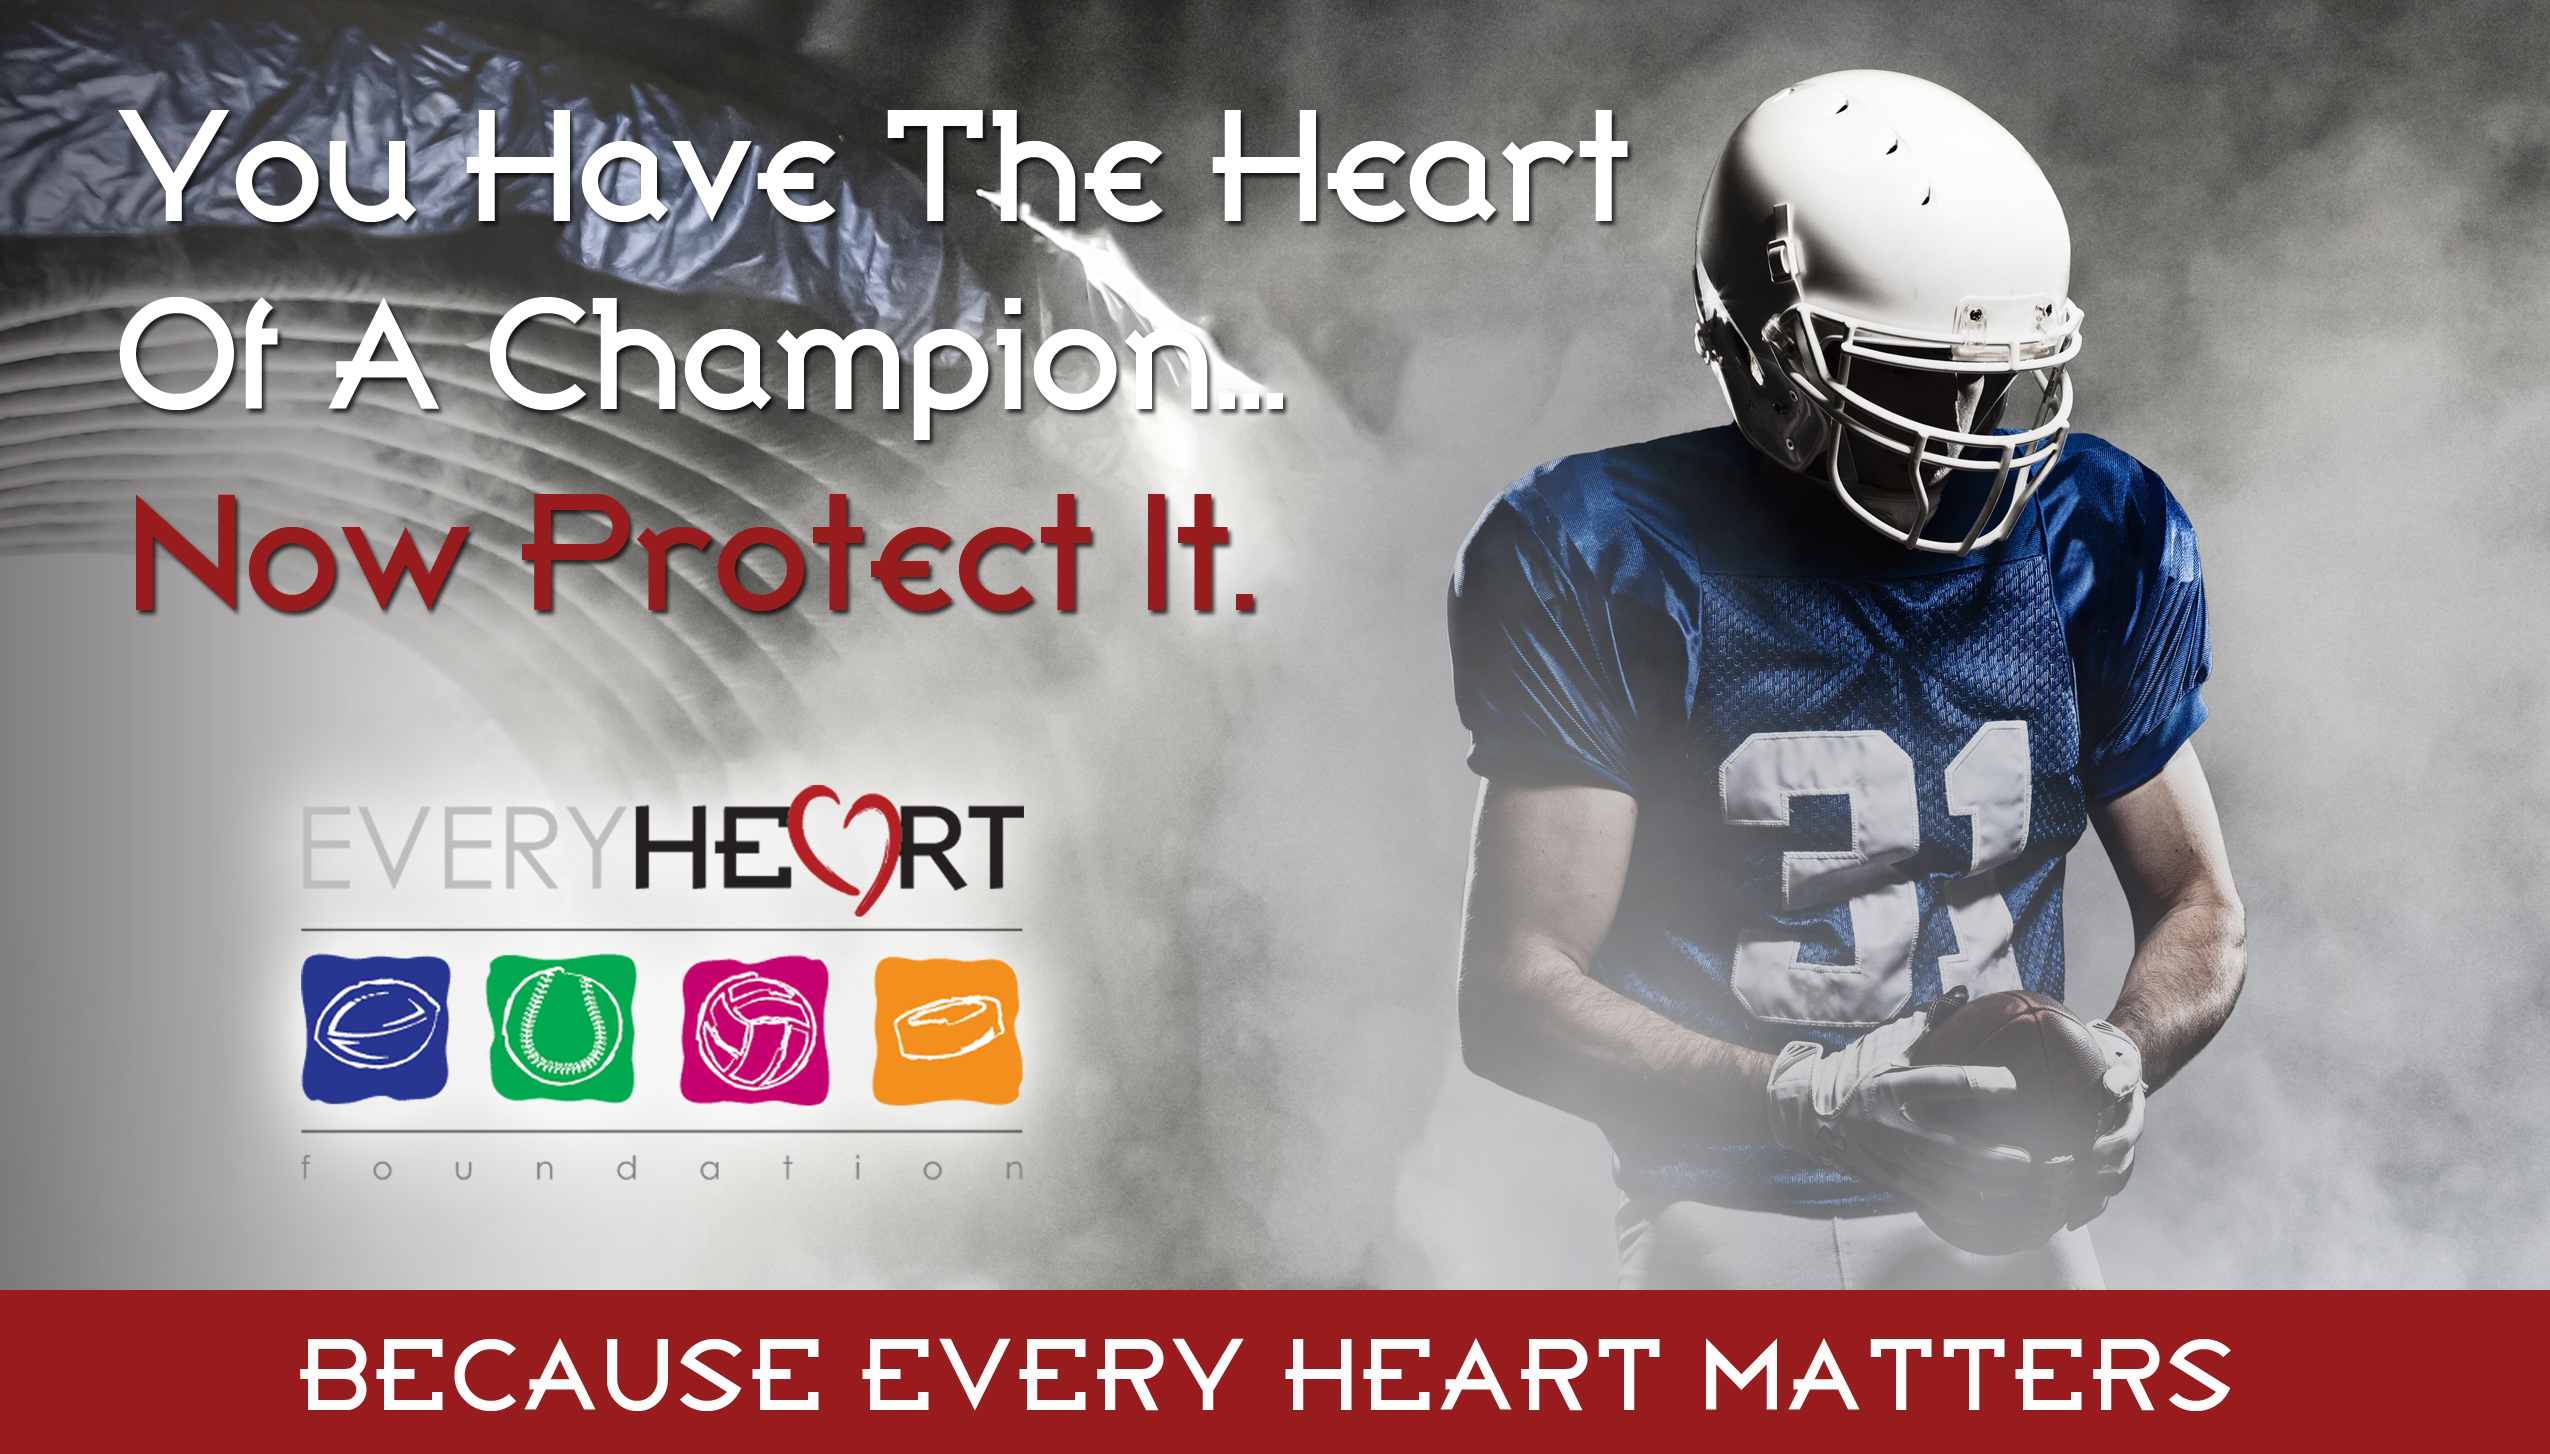 everyheart_inSchool_flyer_cherrycreek